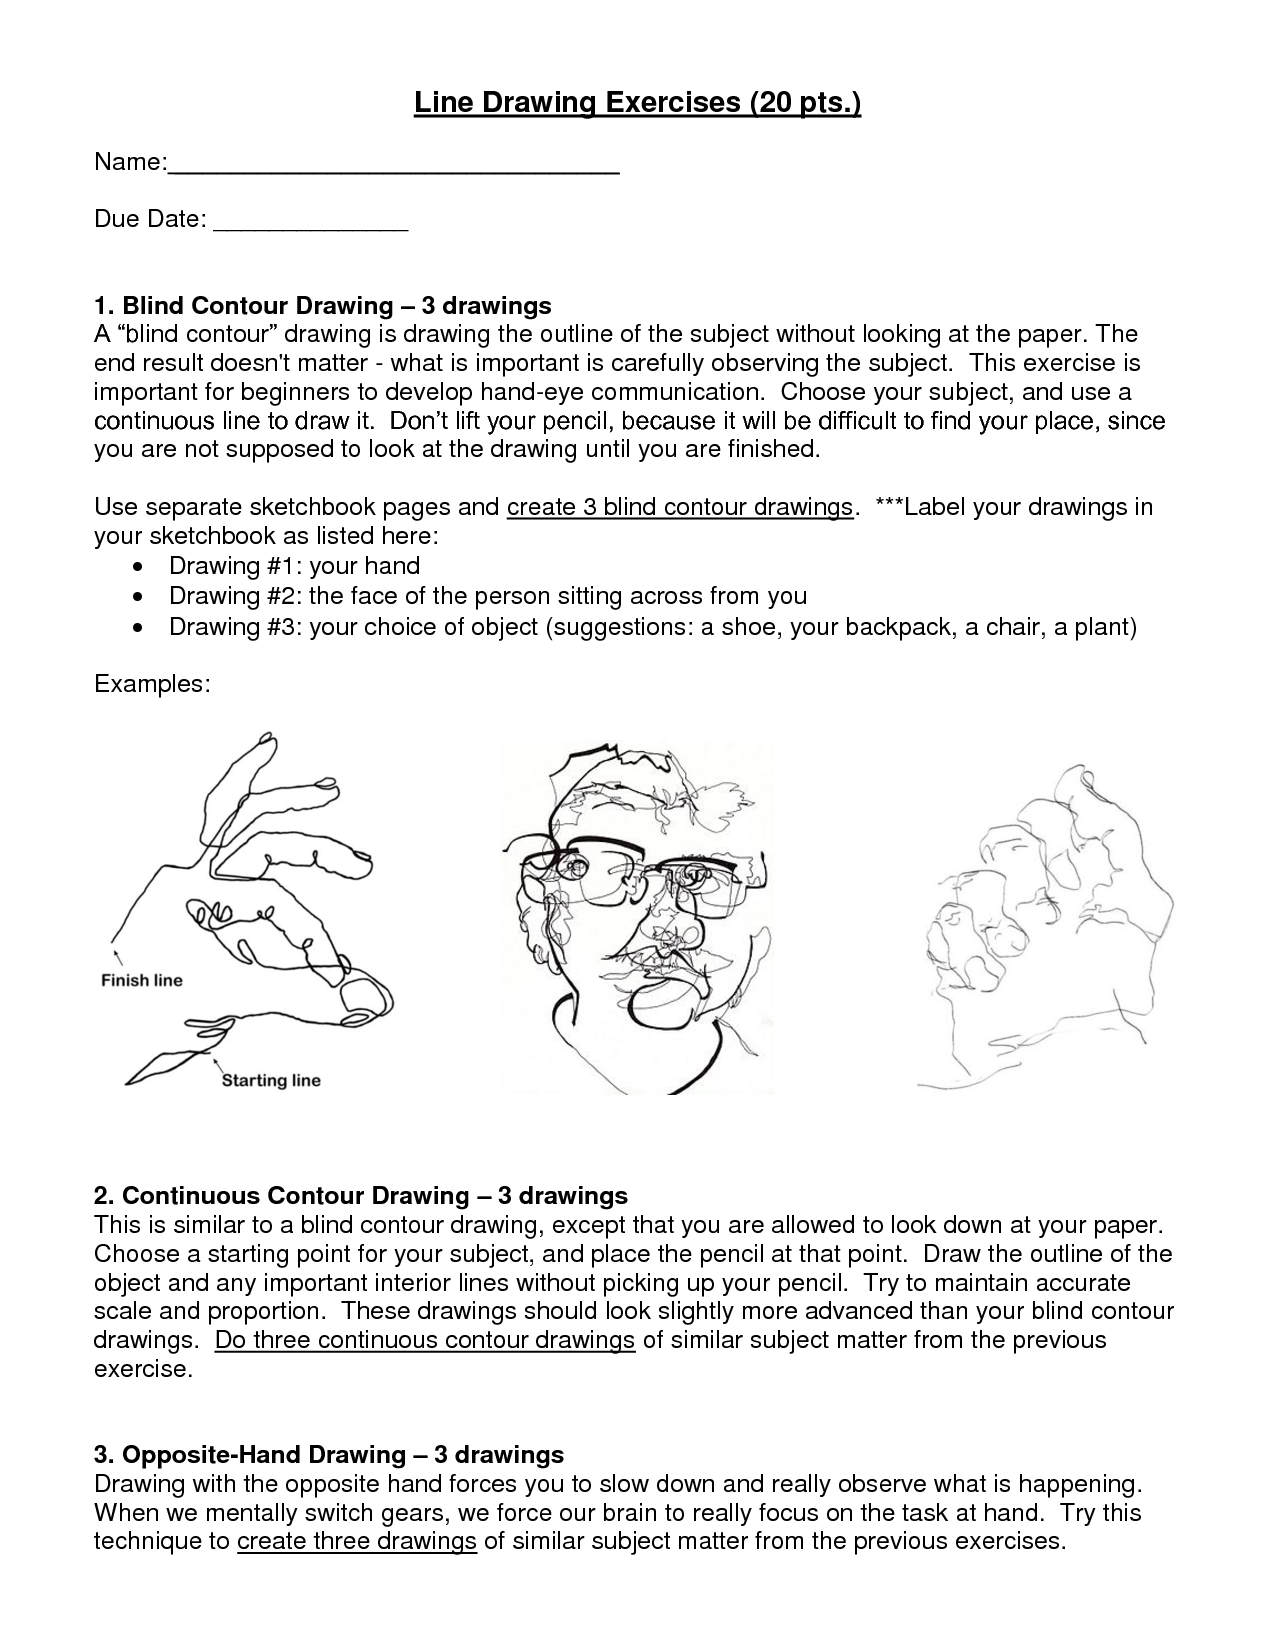 Blind Contour Sheet With Images